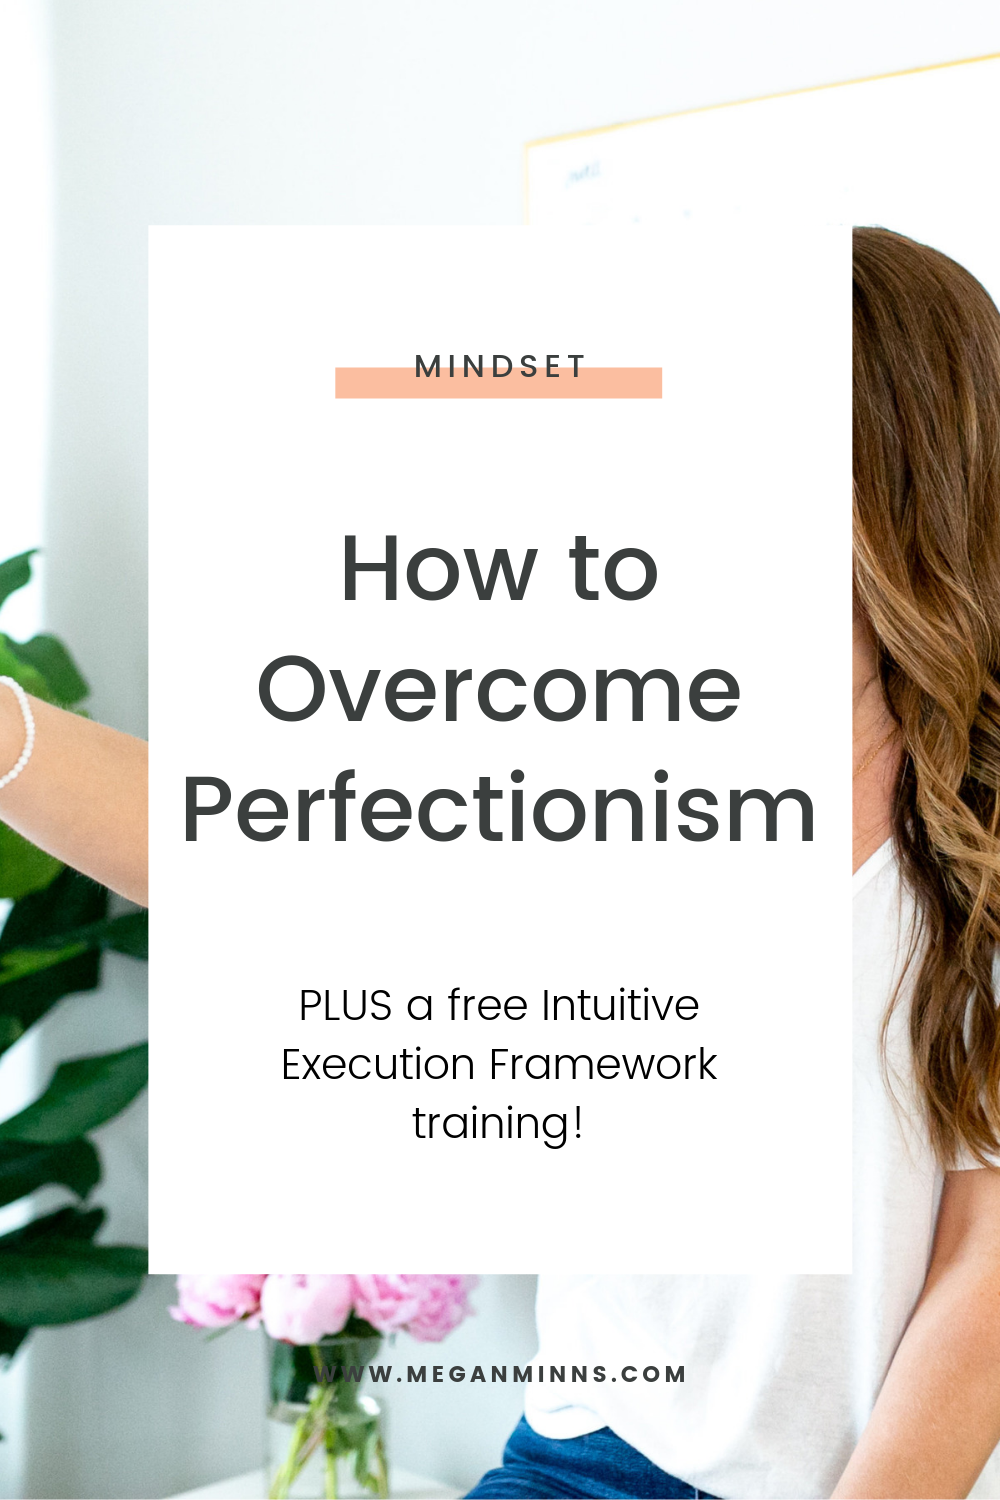 If you're a perfectionist, you know how hard it can be to overcome perfectionism. Maybe it hasn't worked in the past.  In this episode, I'm sharing my story of living as a perfectionist and how I was able to overcome perfectionism and step into my true self.  I'm showing up more confident and feeling more me every day, and I want the same for you. Perfectionism can be disastrous to your work and your business, and it's time to kick it to the curb.  READ THE FULL BLOG POST ➡️ https://meganminns.com/blog/overcome-perfectionism